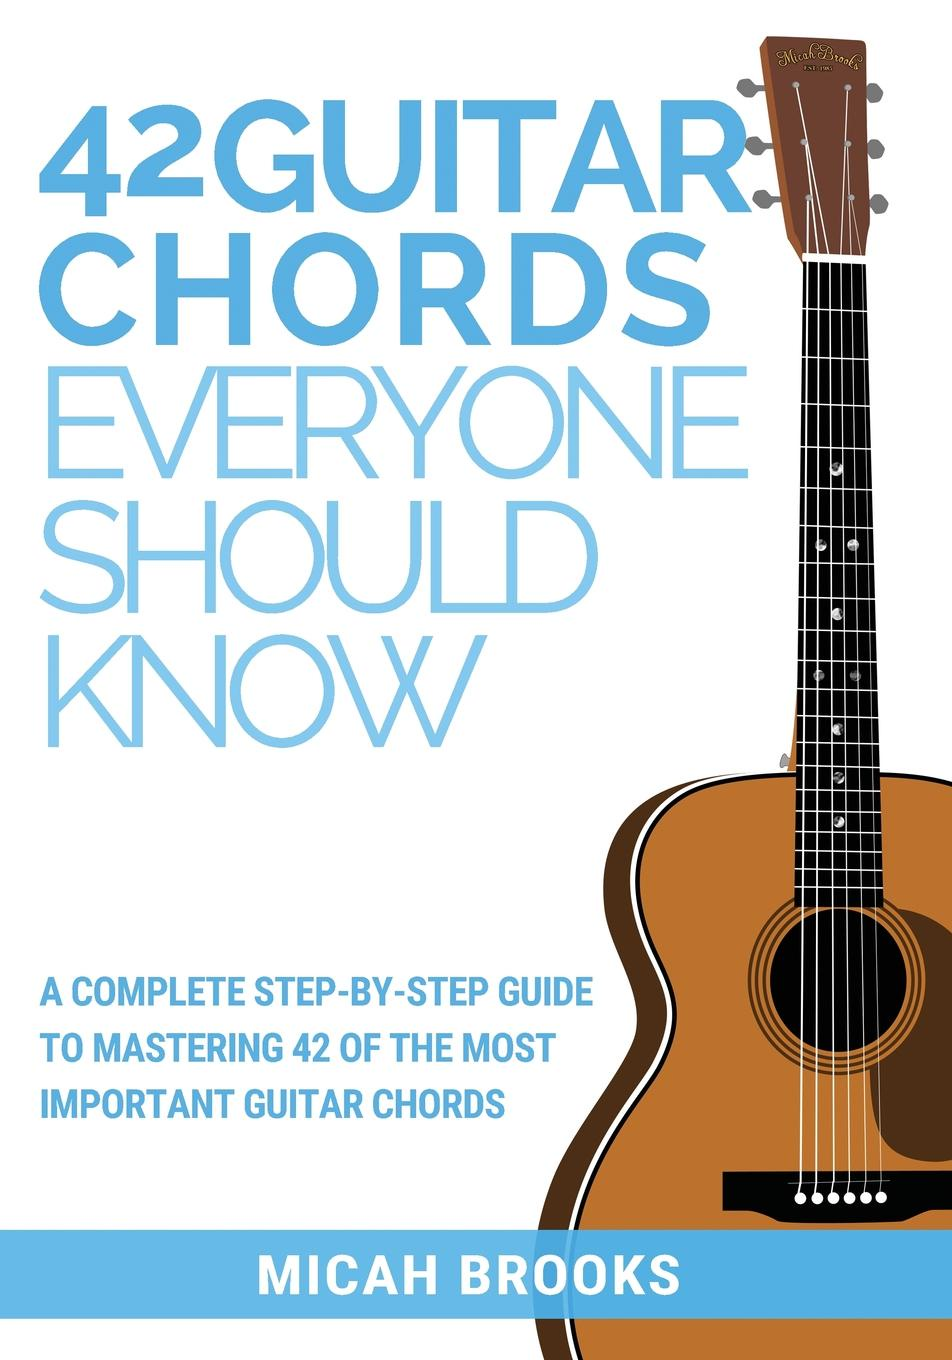 Micah Brooks 42 Guitar Chords Everyone Should Know. A Complete Step-By-Step Guide To Mastering 42 Of The Most Important Guitar Chords guitar accessories natural maple guitar body electric guitar body